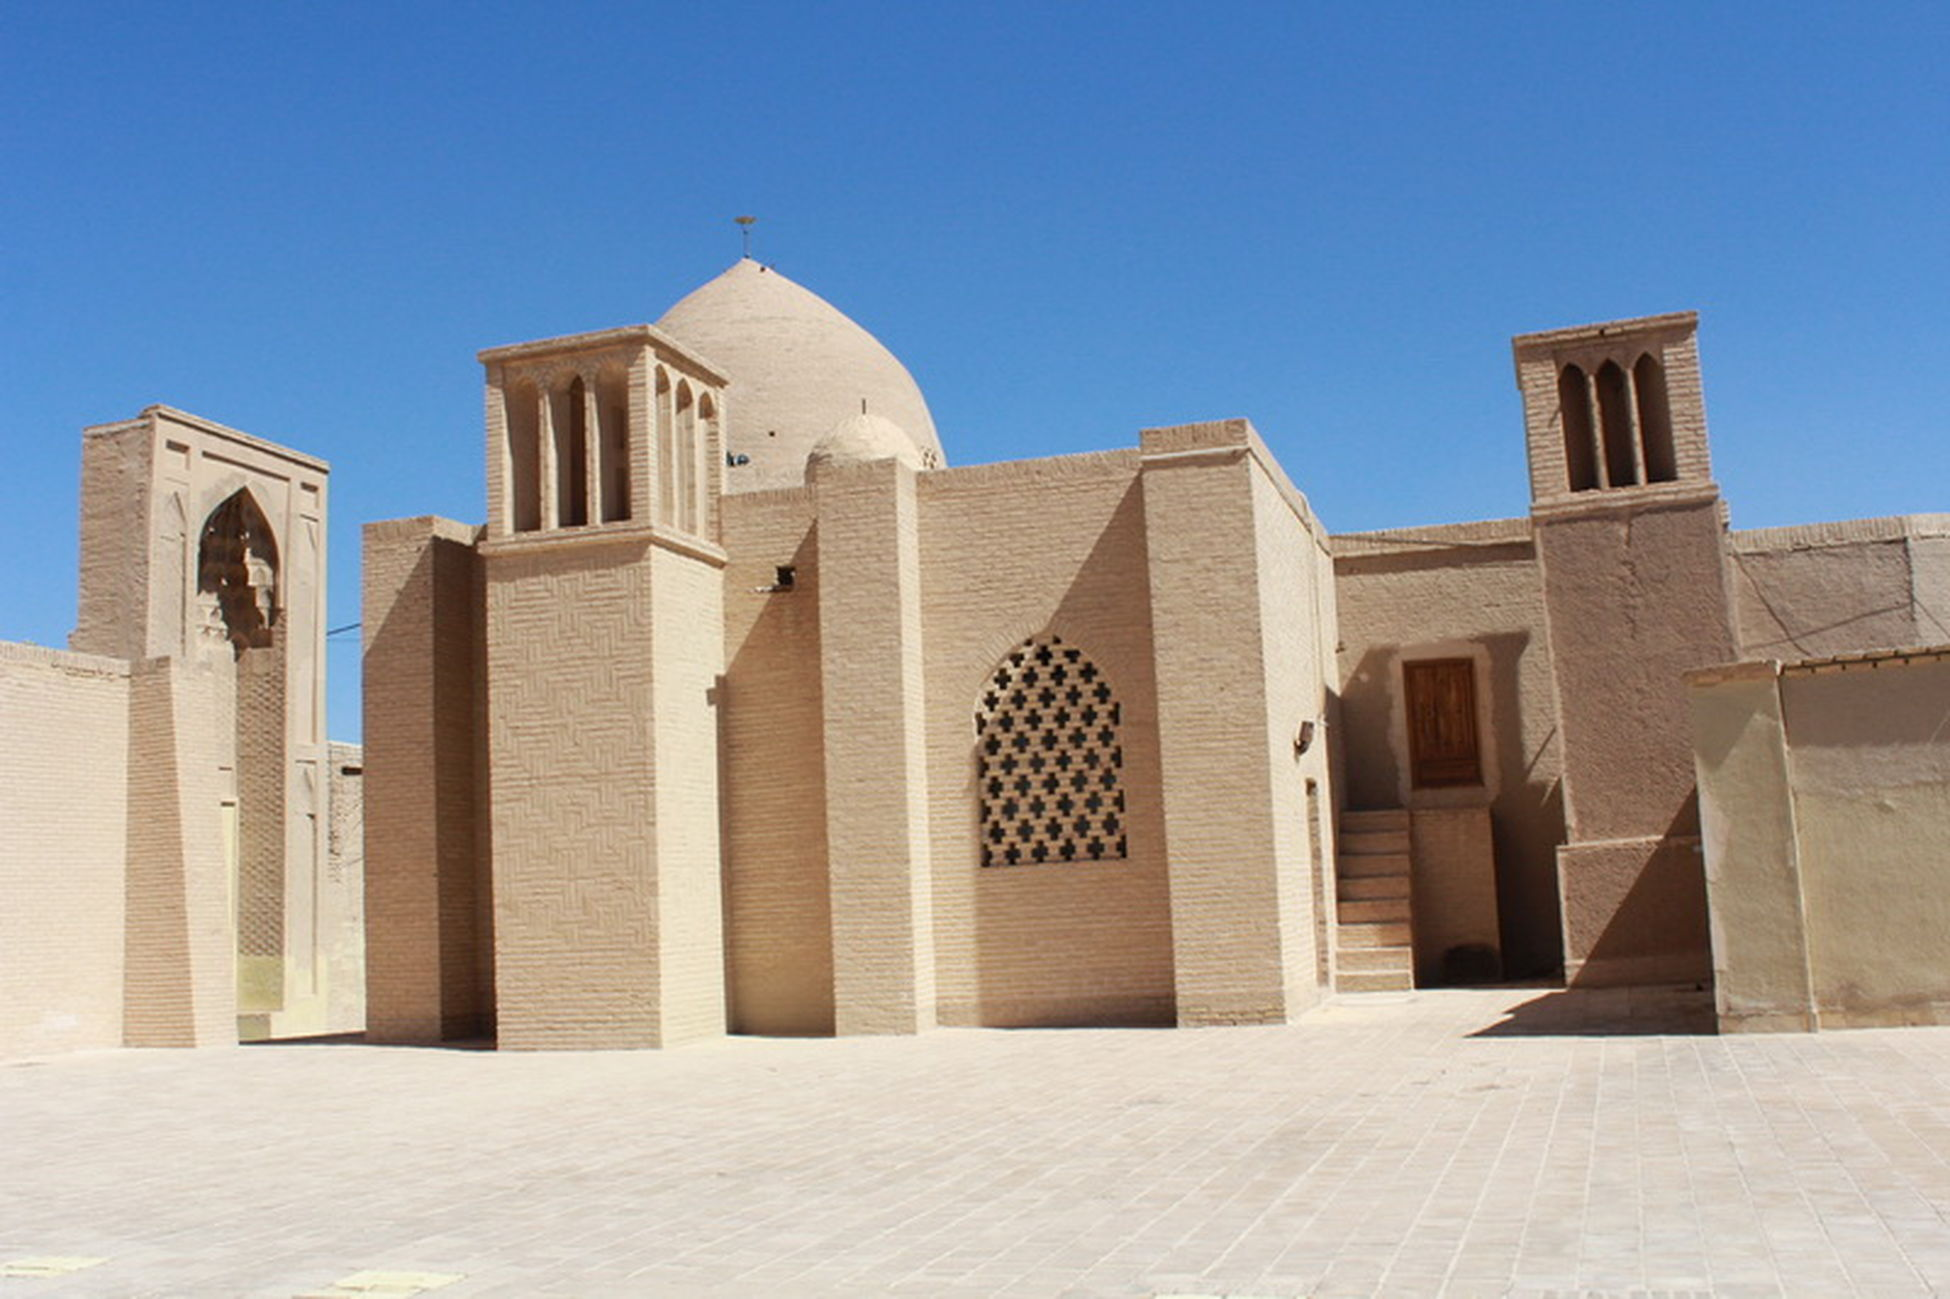 central mosque, Naeen, yazd province, Iran Architecture Building Exterior Built Structure Central Mosque Desert Look History Iran Naeen Place Of Worship Religion